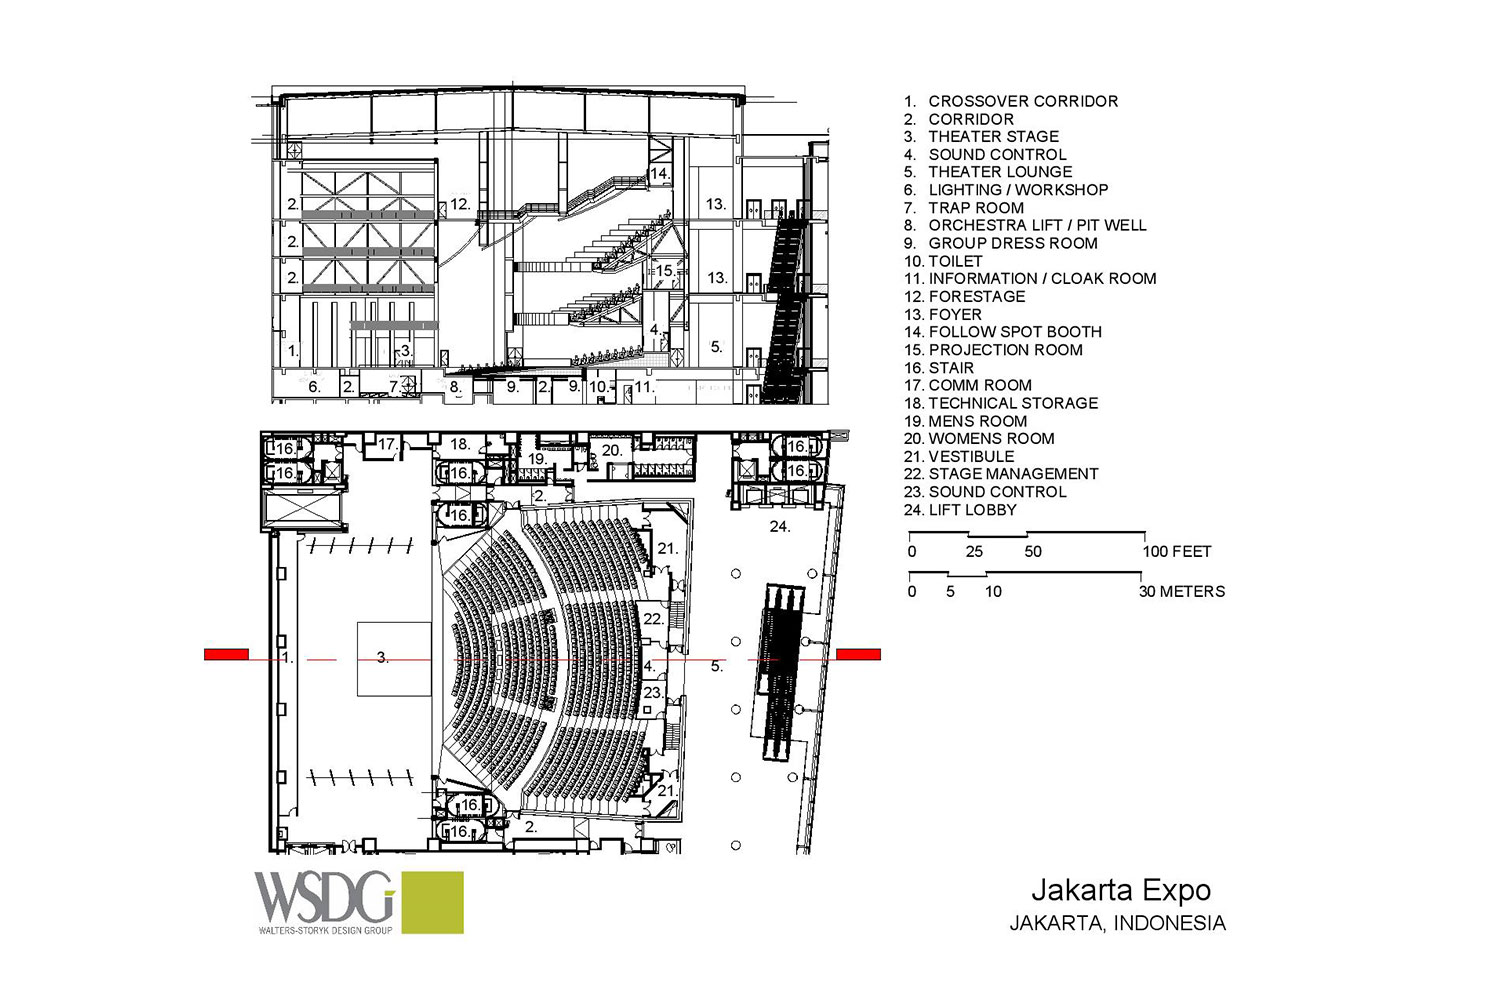 The new Convention Centre and Theatre at Jakarta International Expo (JIExpo) complex will be one of the largest and most forward thinking convention and entertainment centers in Indonesia. WSDG was called to to create an acoustic environment conducive to world-class acoustical standards throughout the complex. Presentation Drawing 5